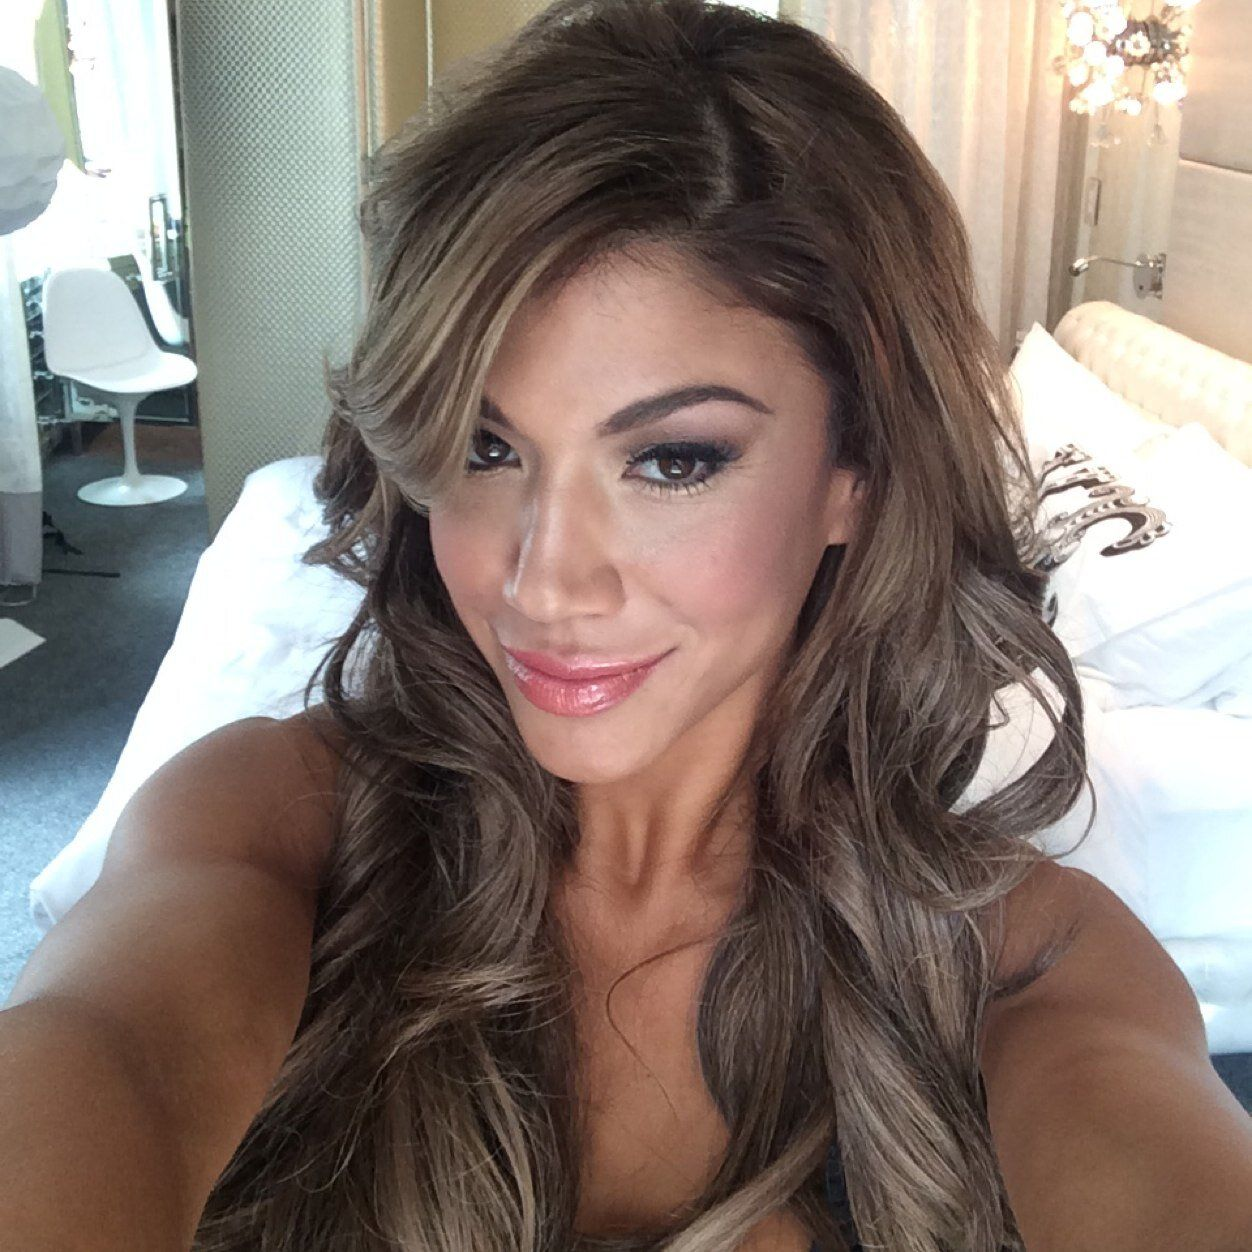 Celebrites Rosa Mendes nude (38 images), Cleavage